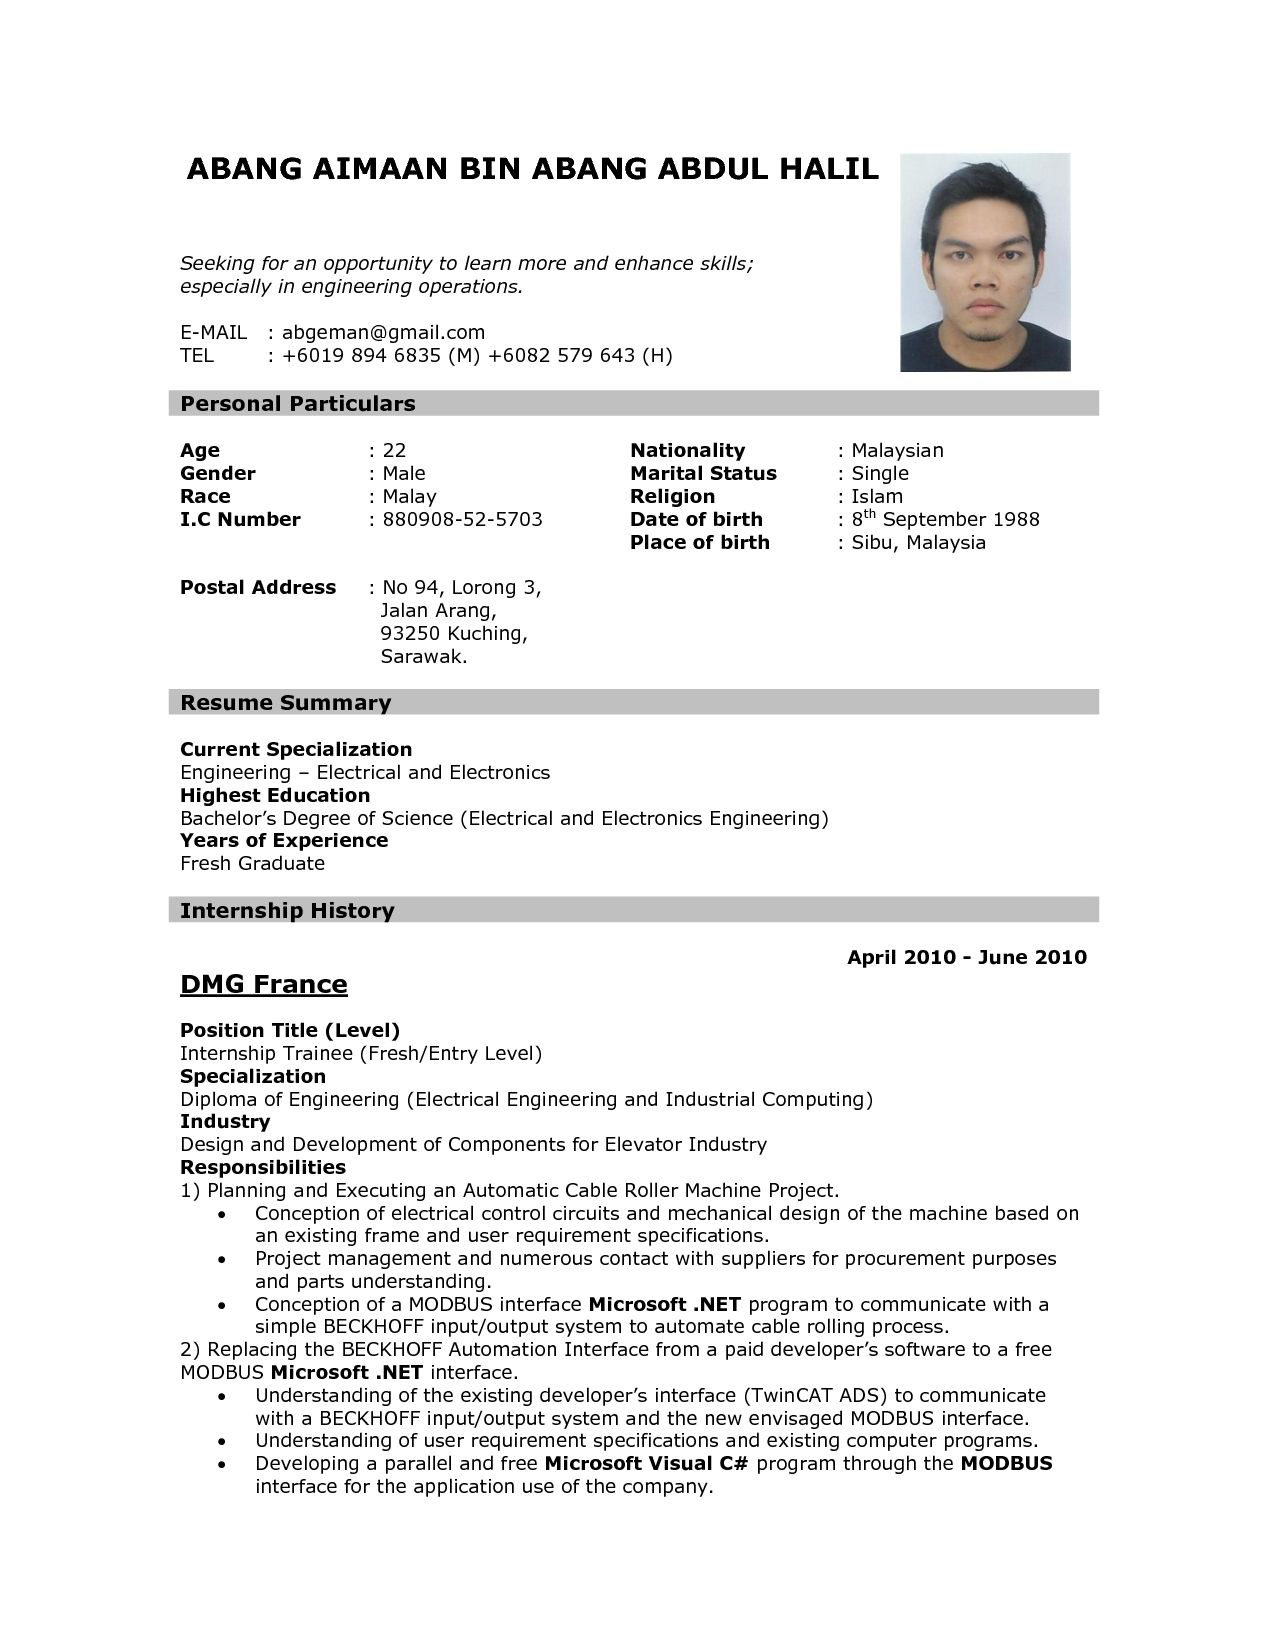 application resume format of resume for job